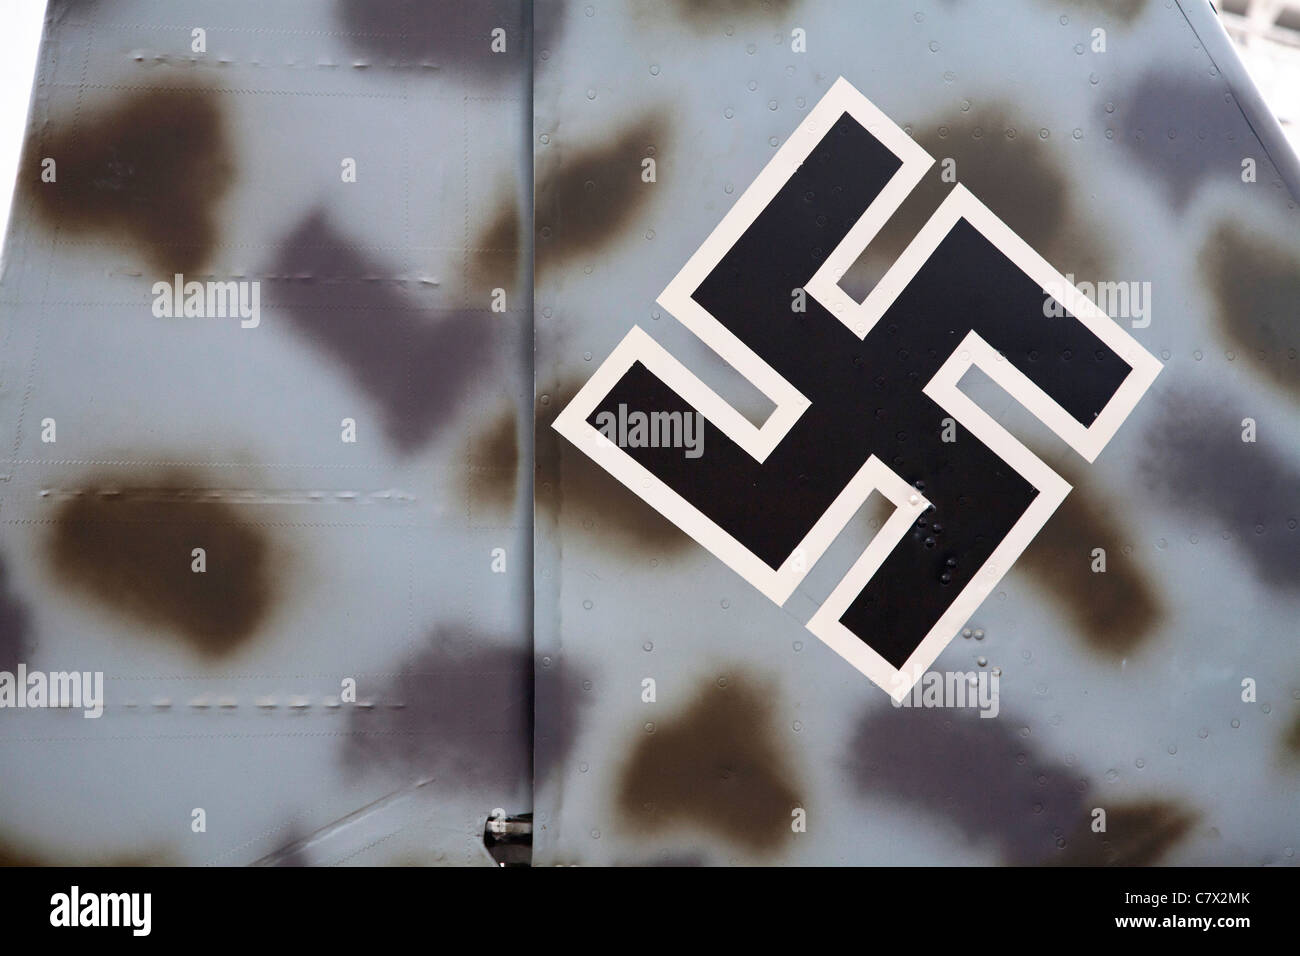 Nazi swastika and camouflage on the tail of a focke wulf ww2 nazi swastika and camouflage on the tail of a focke wulf ww2 aircraft in the imperial war museum london biocorpaavc Images